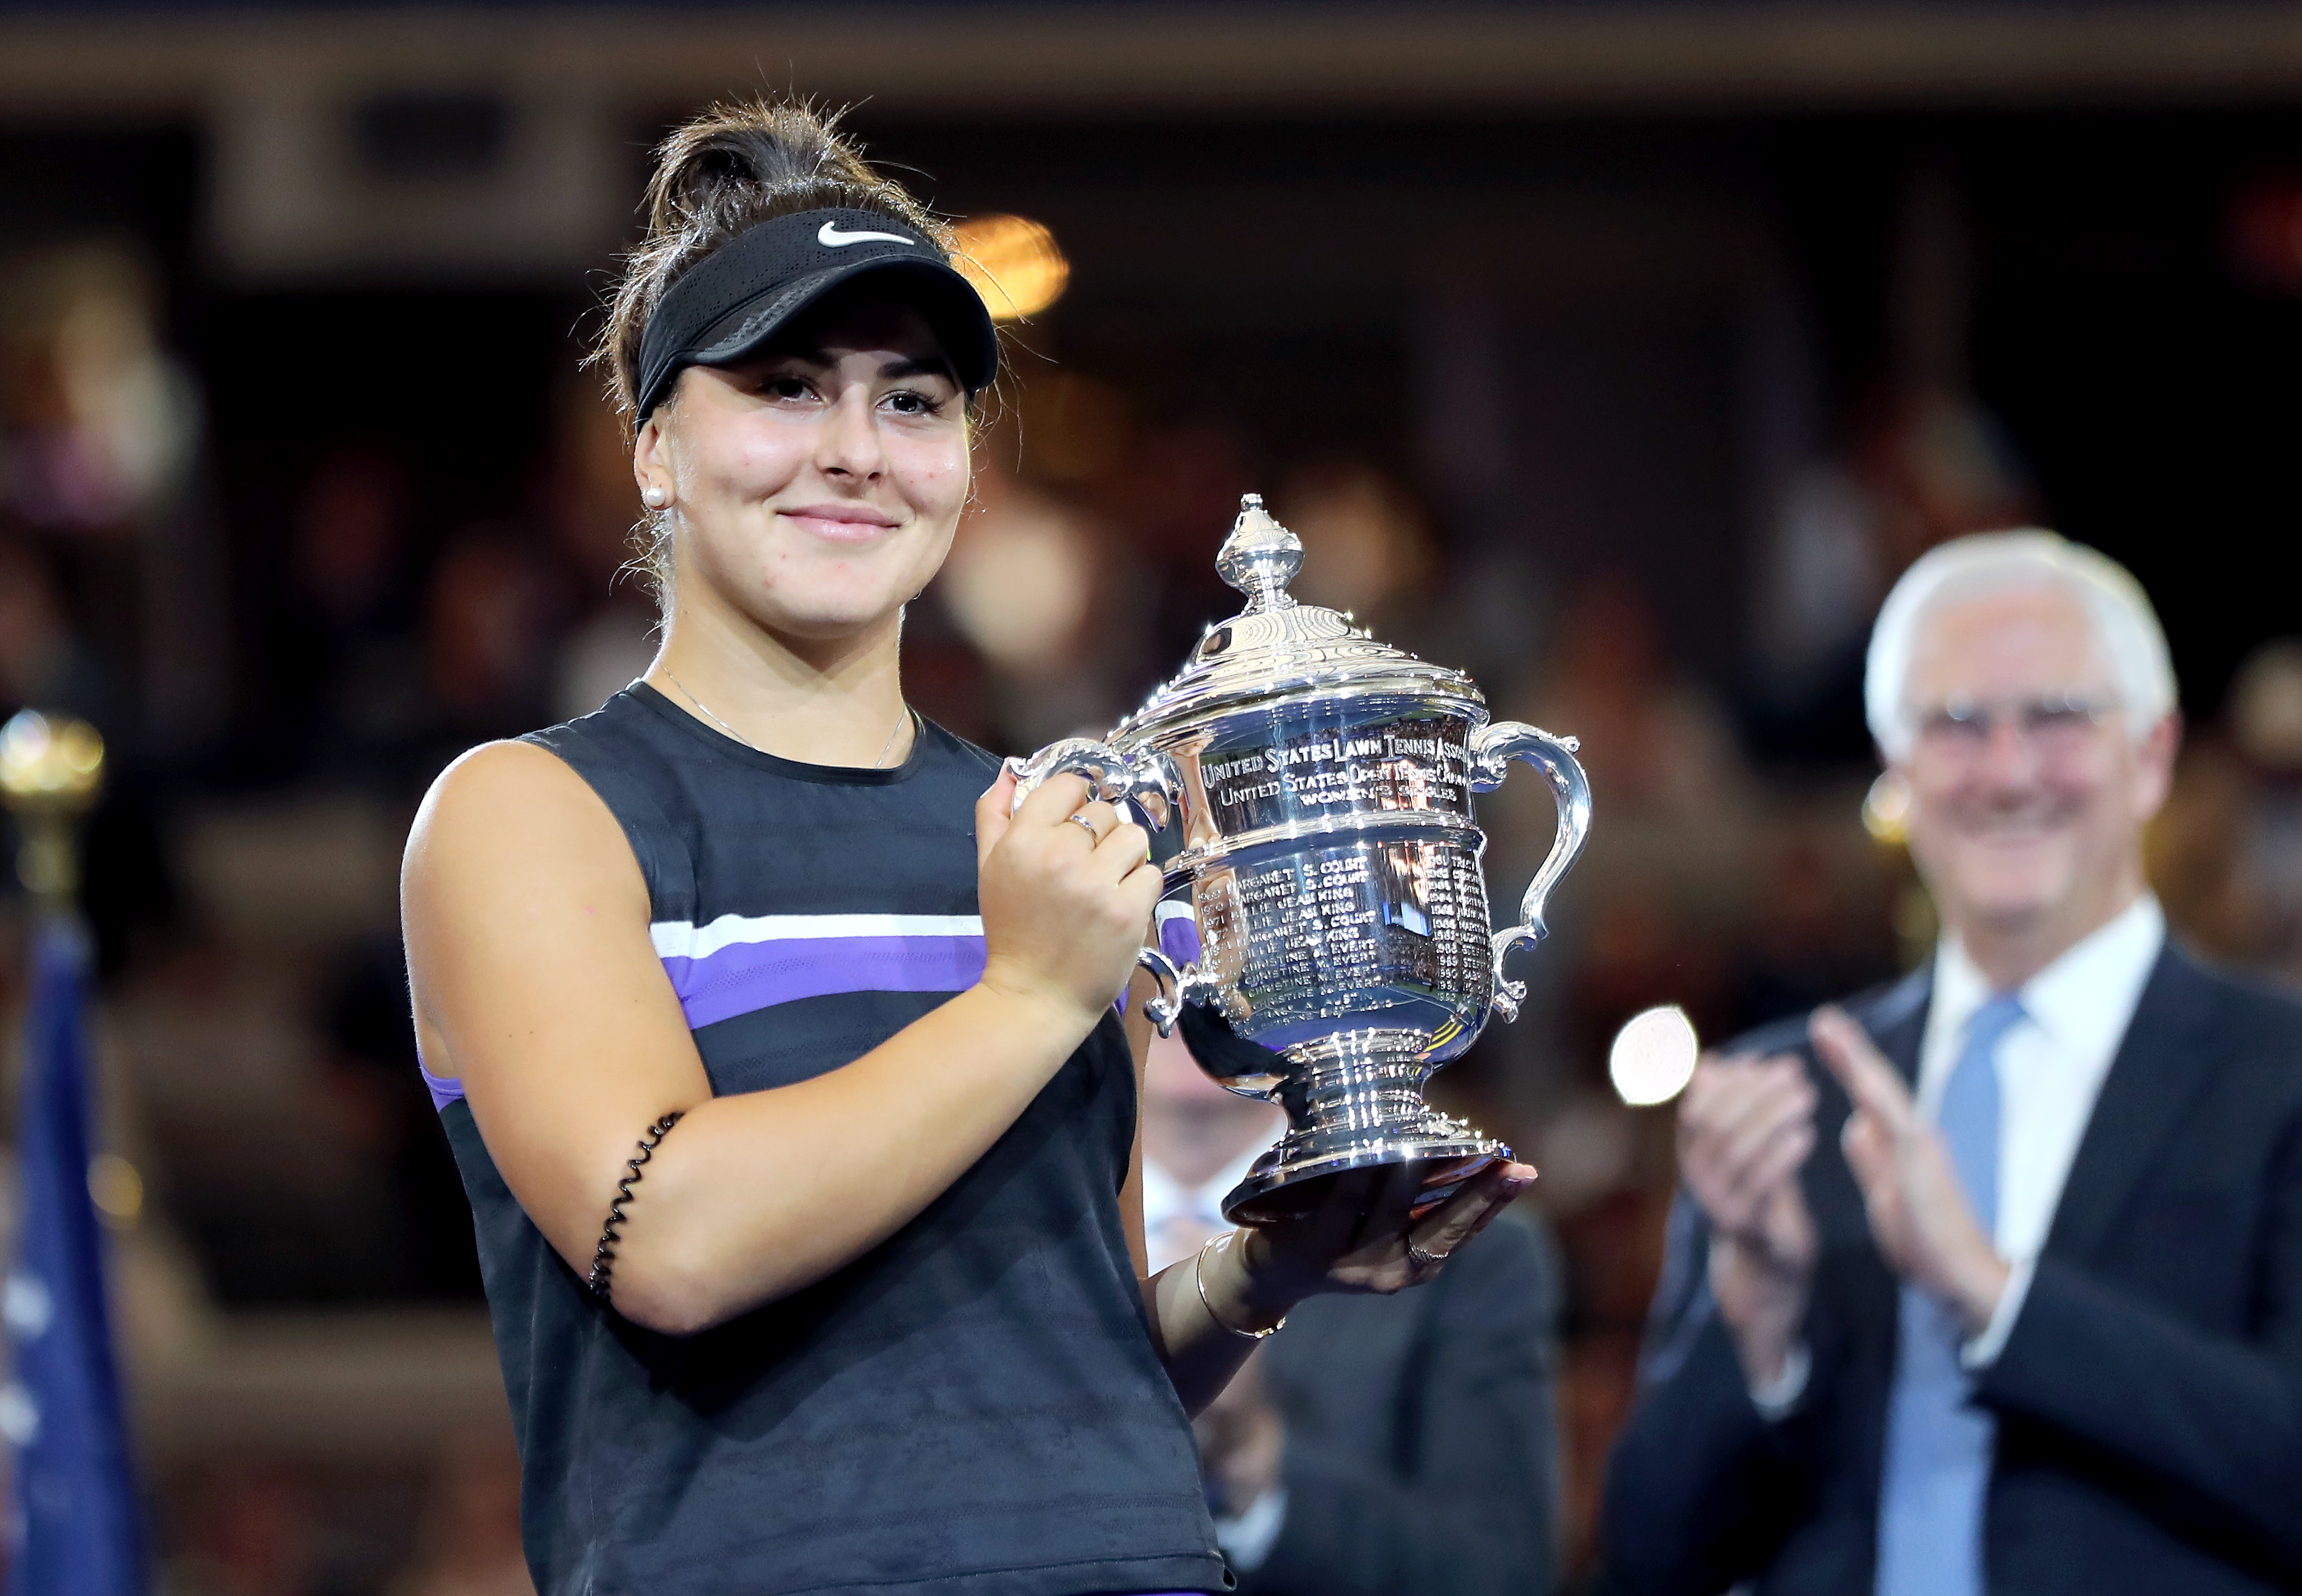 US Open champ: I've dreamt of this moment for a long time